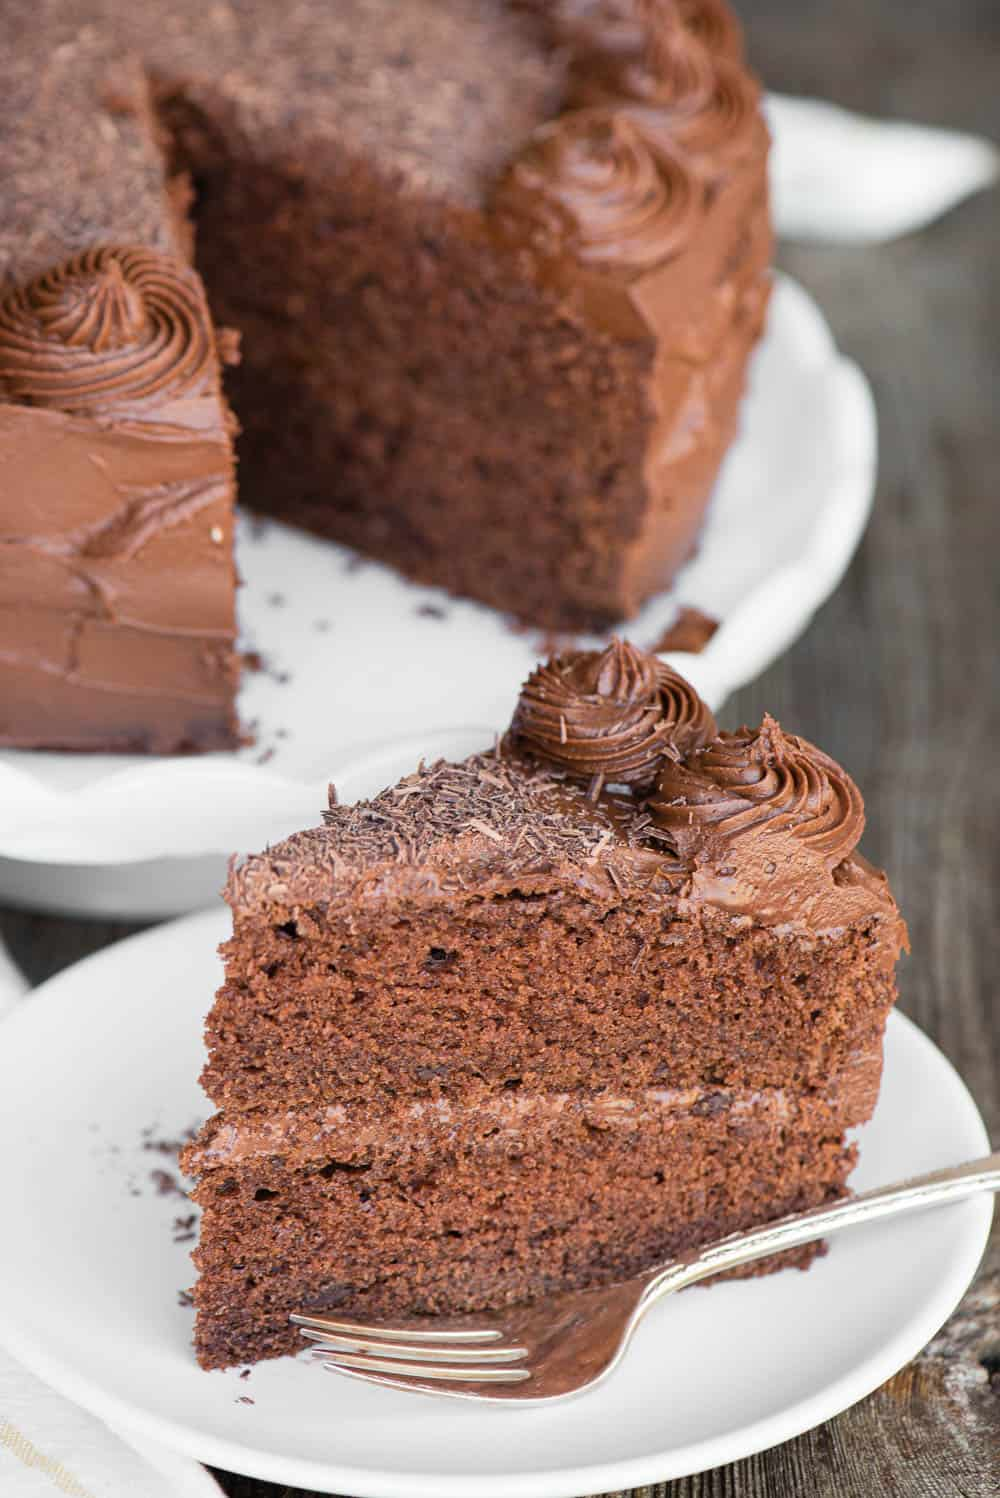 slice of Chocolate Cake on white plate with chocolate frosting